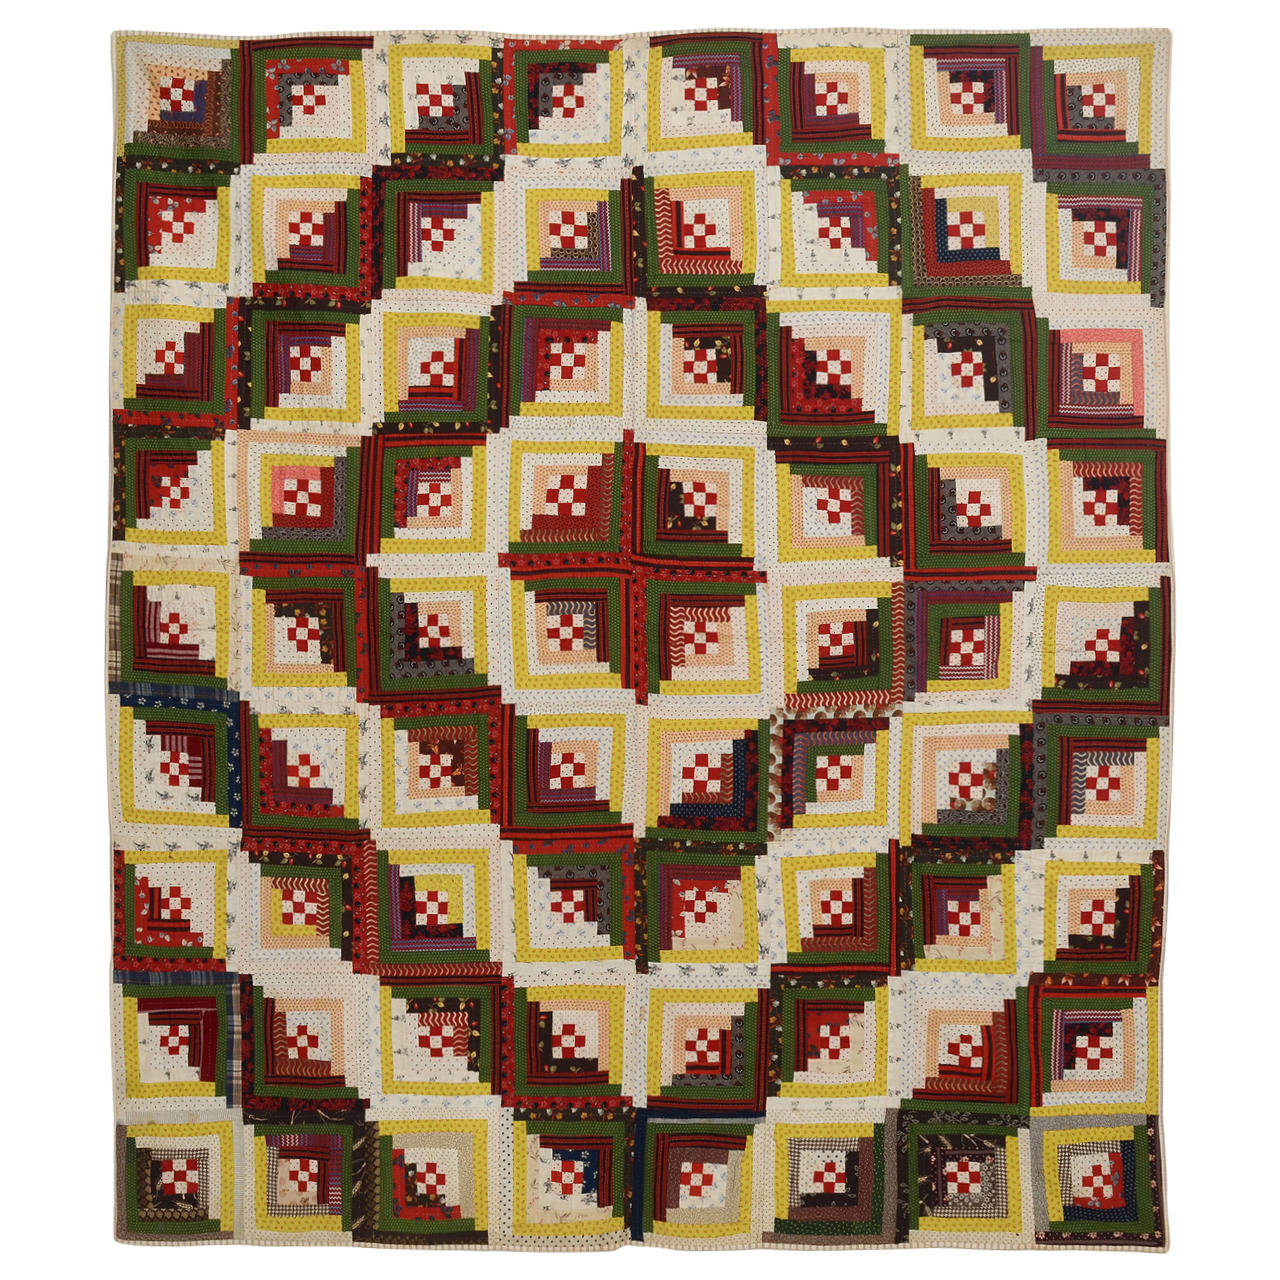 Marvelous photograph of Barnraising Log Cabin Quilt with Nine Patch Centers at 1stdibs with #A0872B color and 1280x1280 pixels